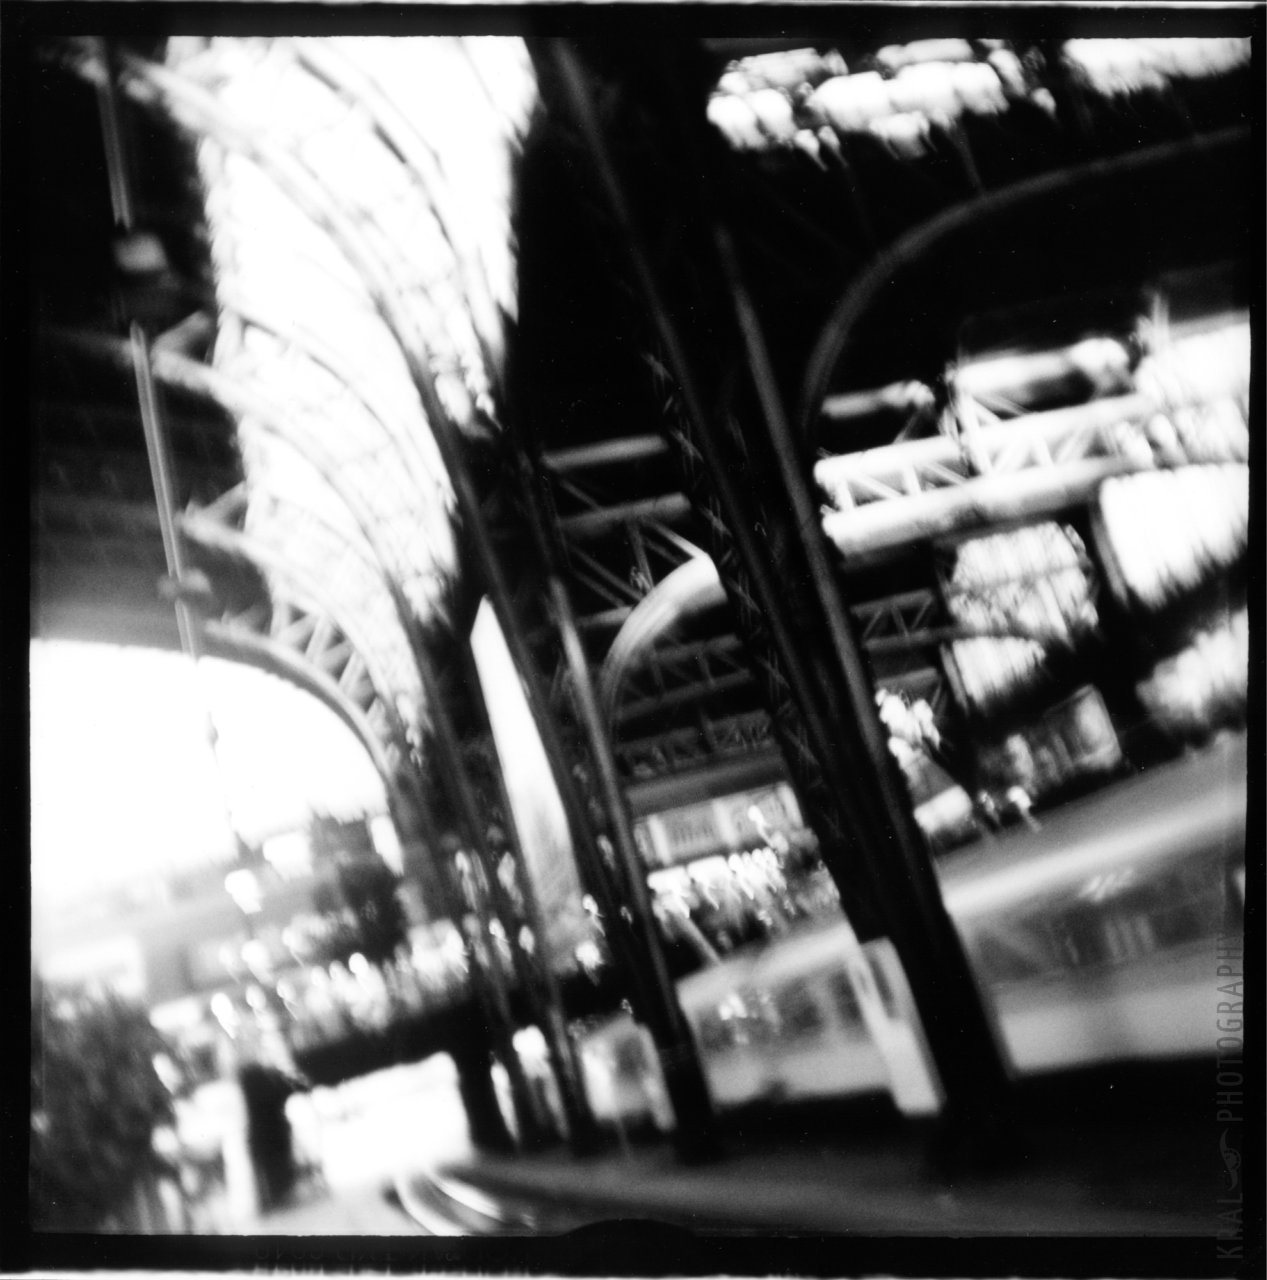 © Holger Kral • Photography - BAHNHOF - 1999, berlin, blackwhite - photo #1